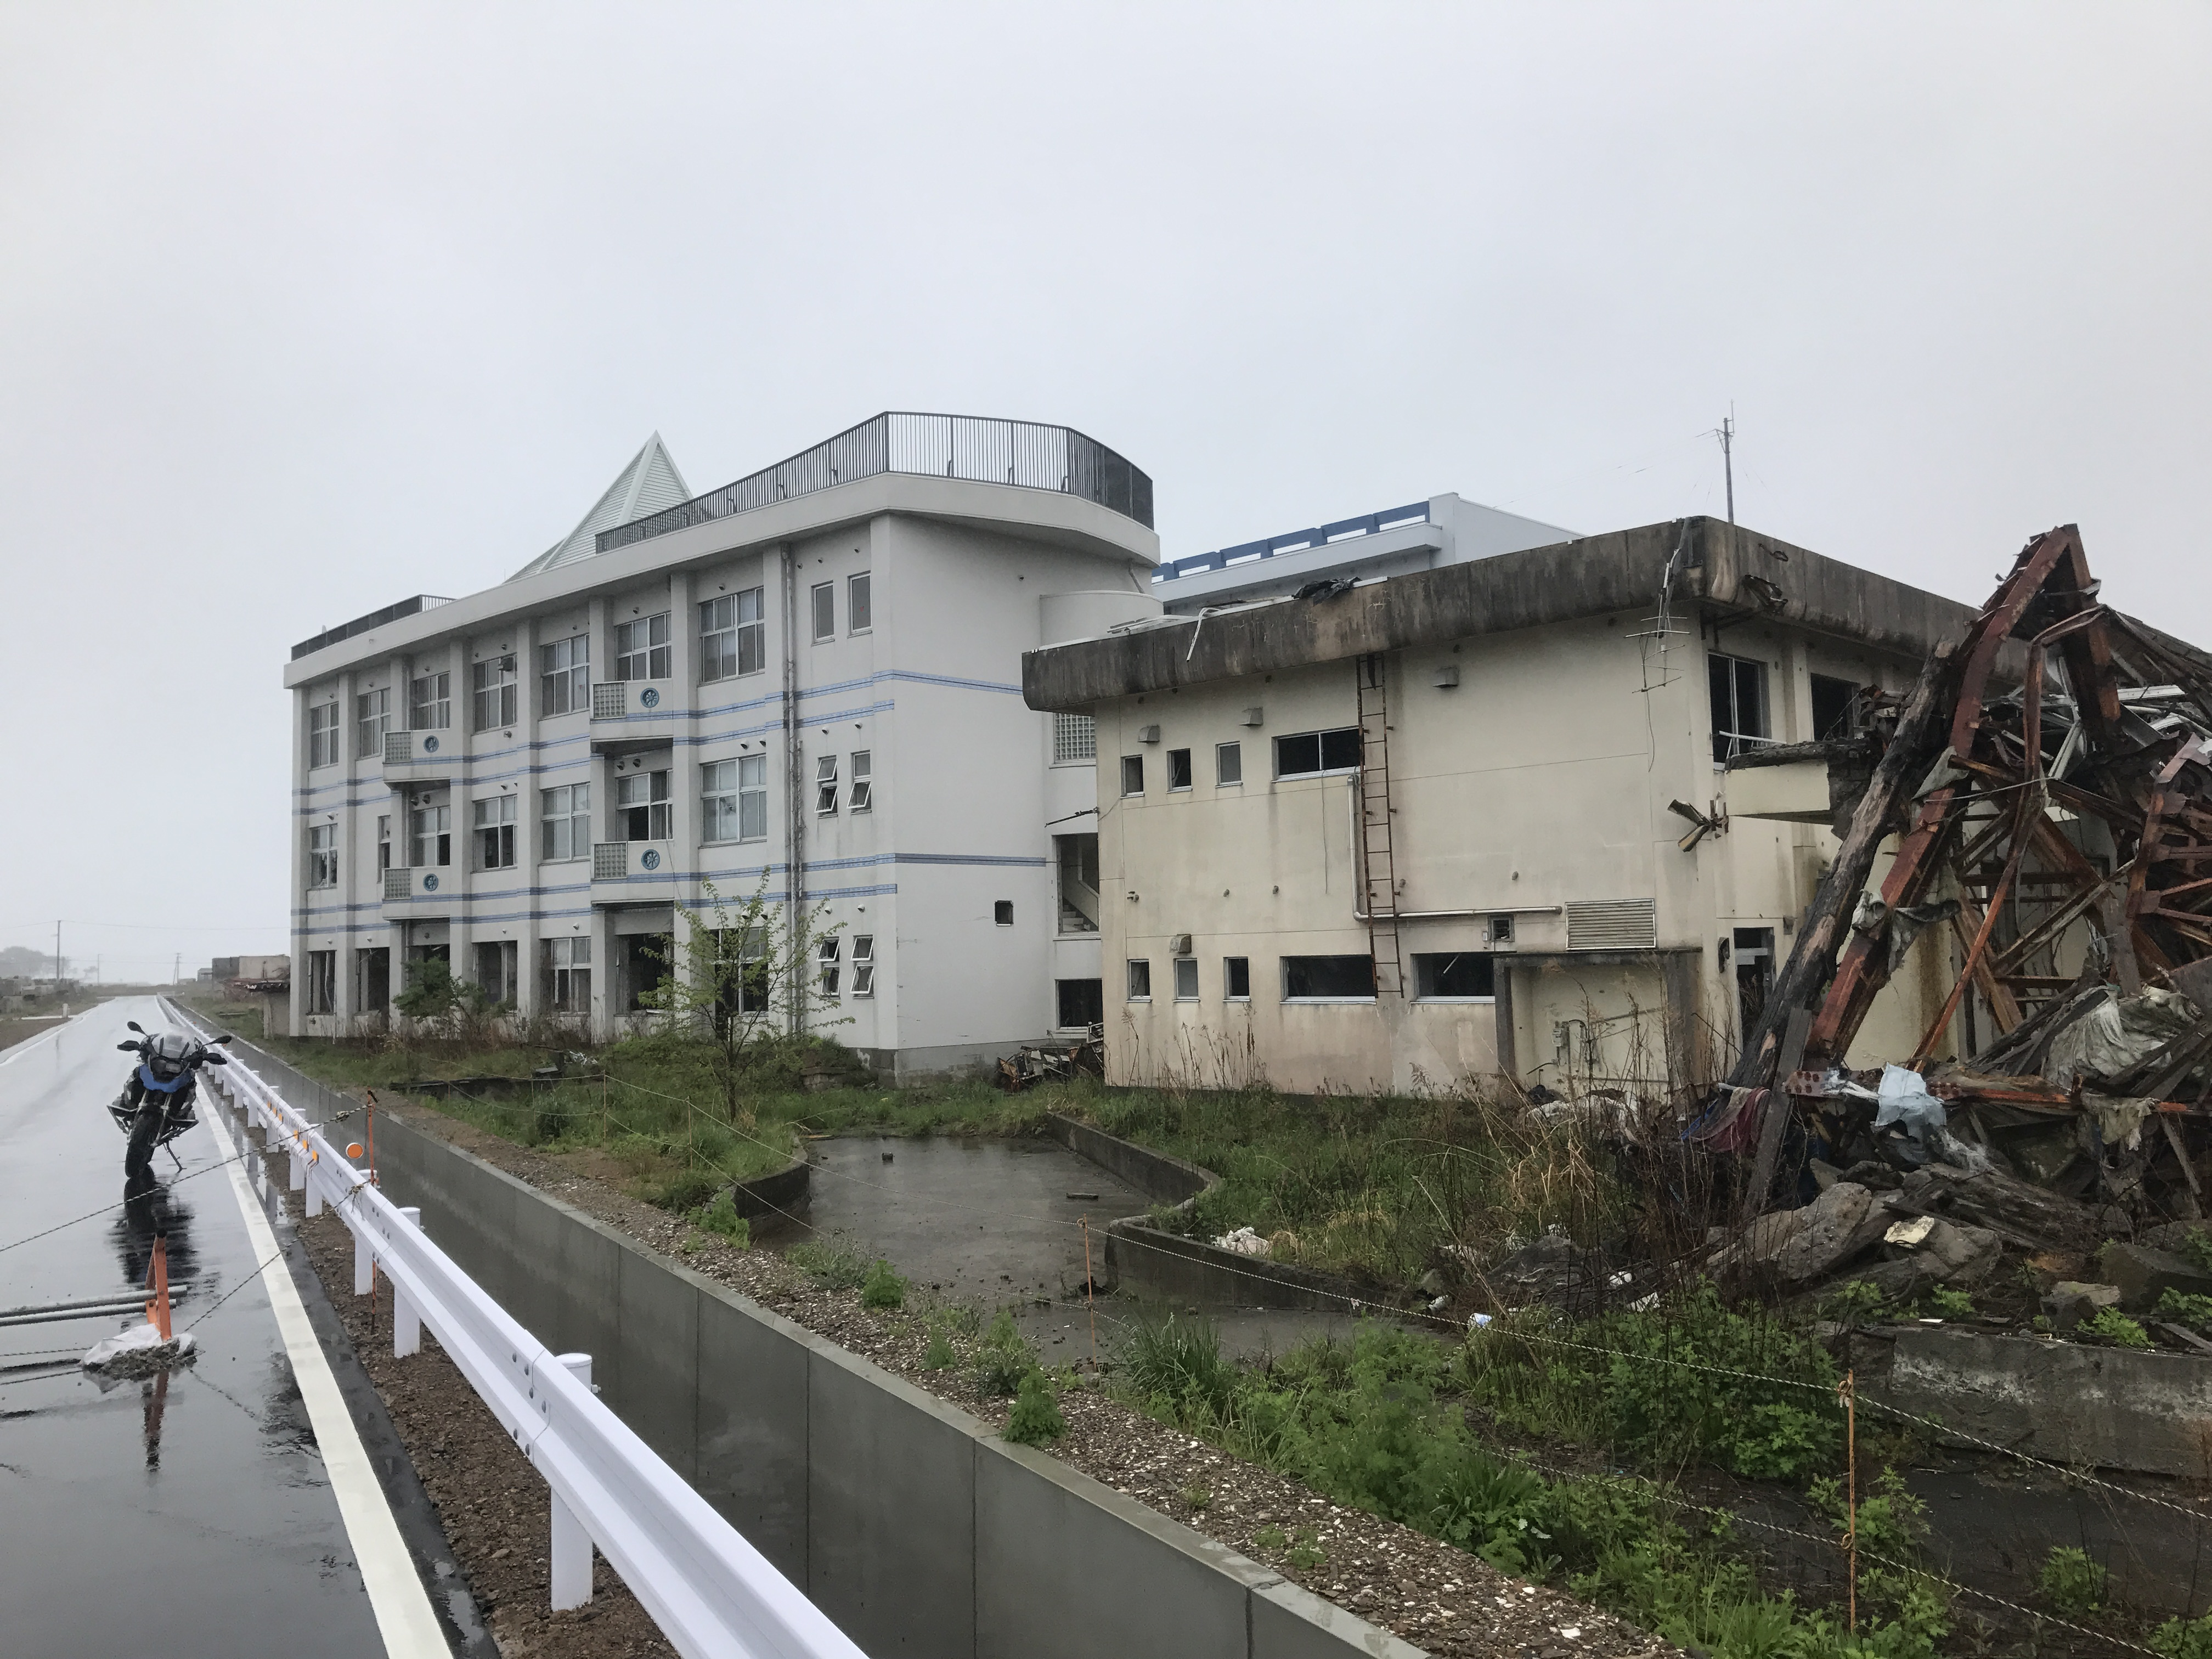 Tsunami Tales Pt 3 The School Where All The Students